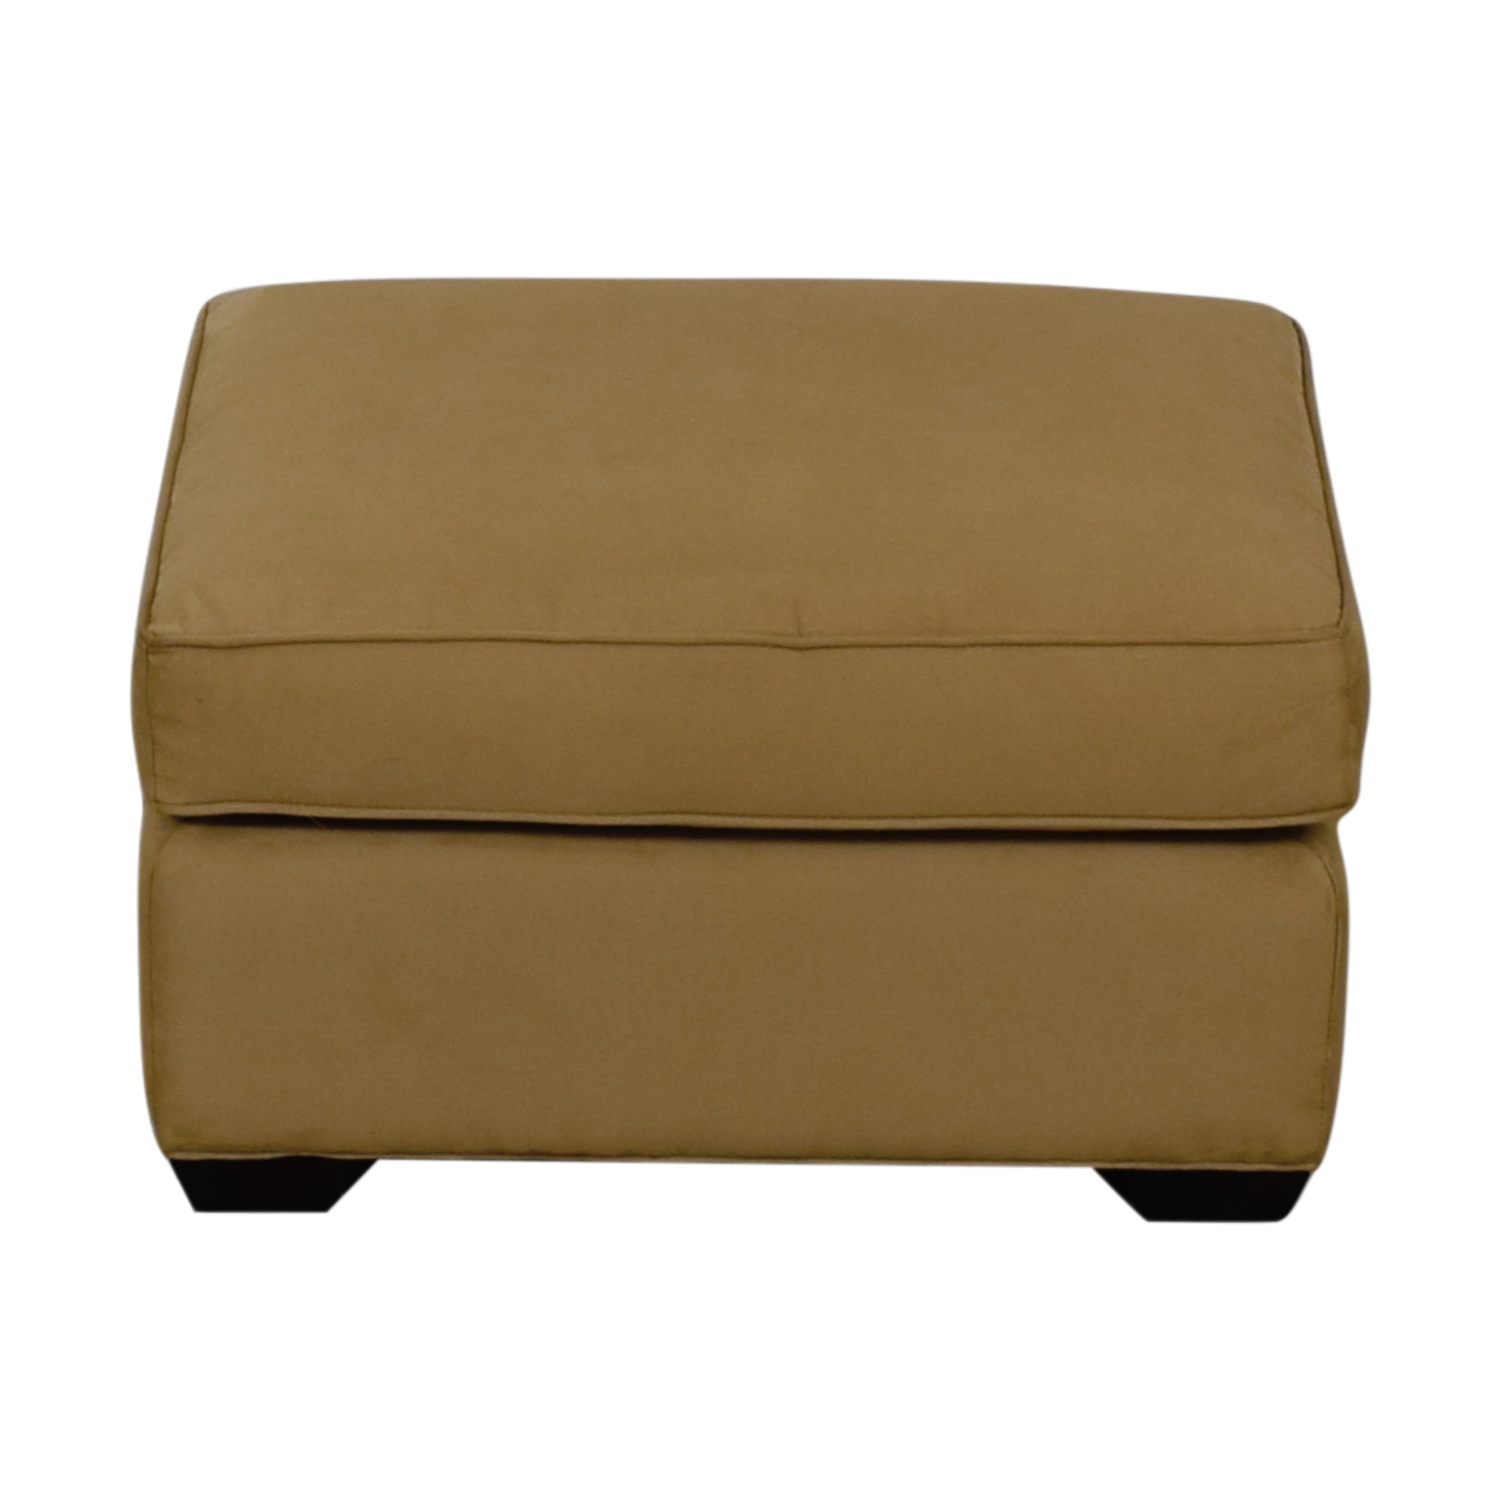 buy Crate & Barrel Crate & Barrel Davis Beige Ottoman online